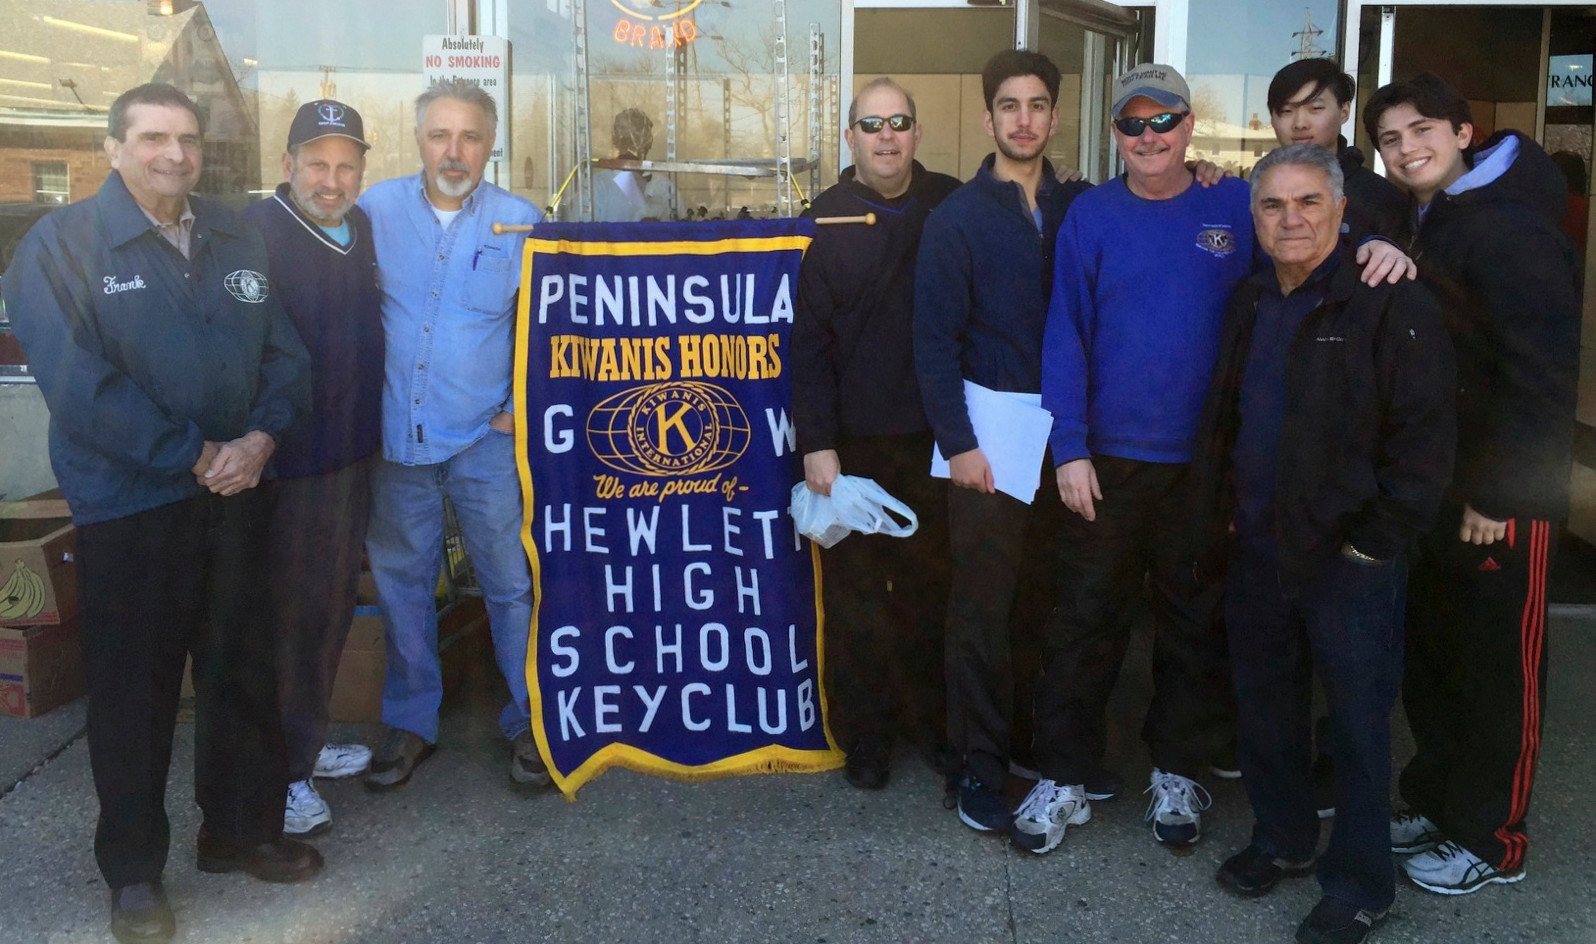 Outside King Kullen supermarket in Hewlett, Peninsula Kiwanis and Hewlett High Key Club members collected food items. From left were Frank Basile, Michael Gliner, Kiwanis President Dominick A. Curra, Larry Romanelli, Yanni Akhavan, Mark Maguire, Justin Ng, Don Esopa and Nathaniel Eisenberg.